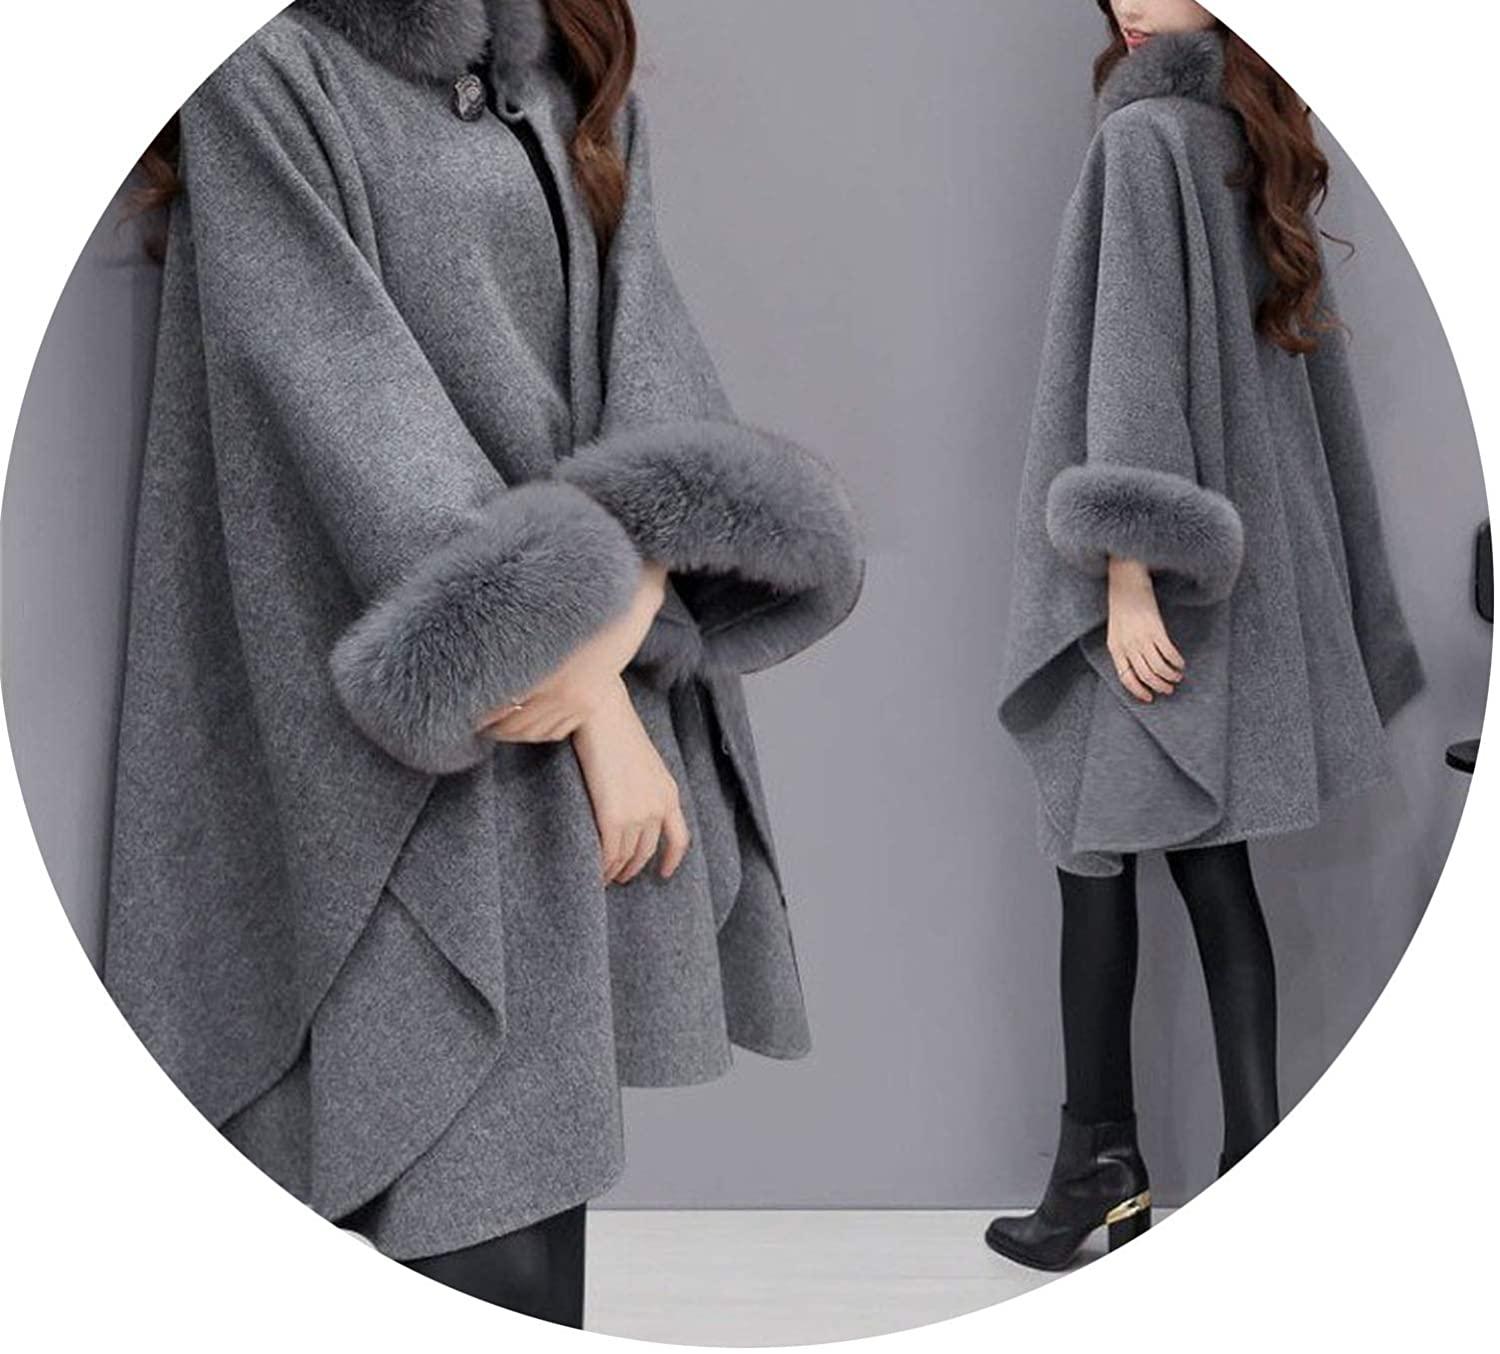 Fashion Style and Cotton Manufacturing Autumn and Winter Coat,Woman s Jacket Outwear Daily Life